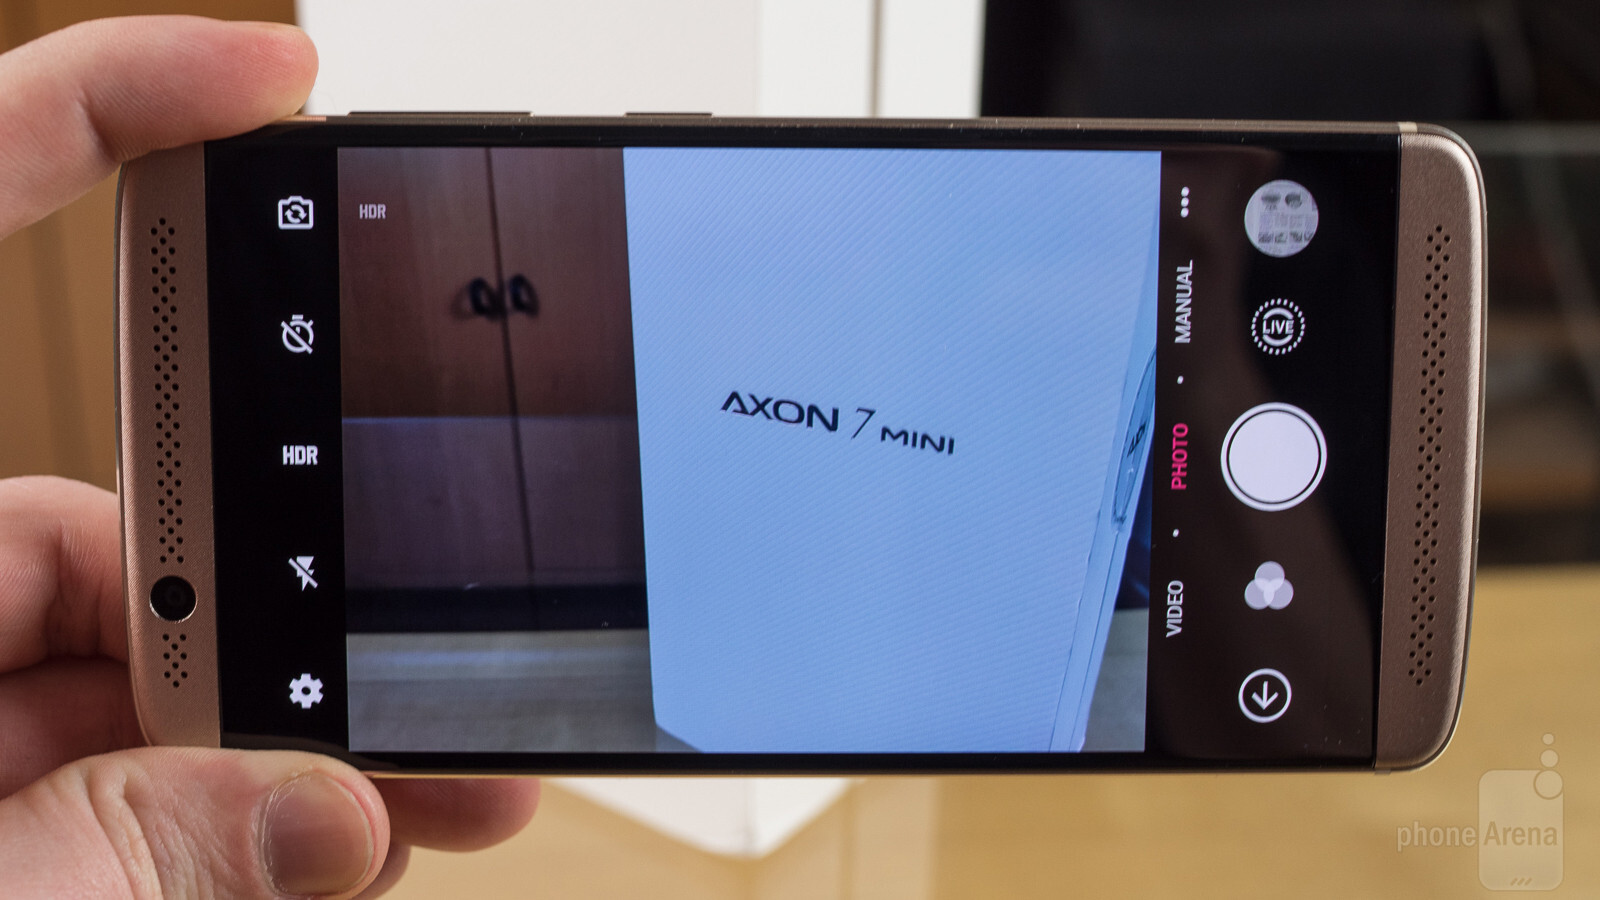 zte axon 7 mini camera review install KOPLAYER Android